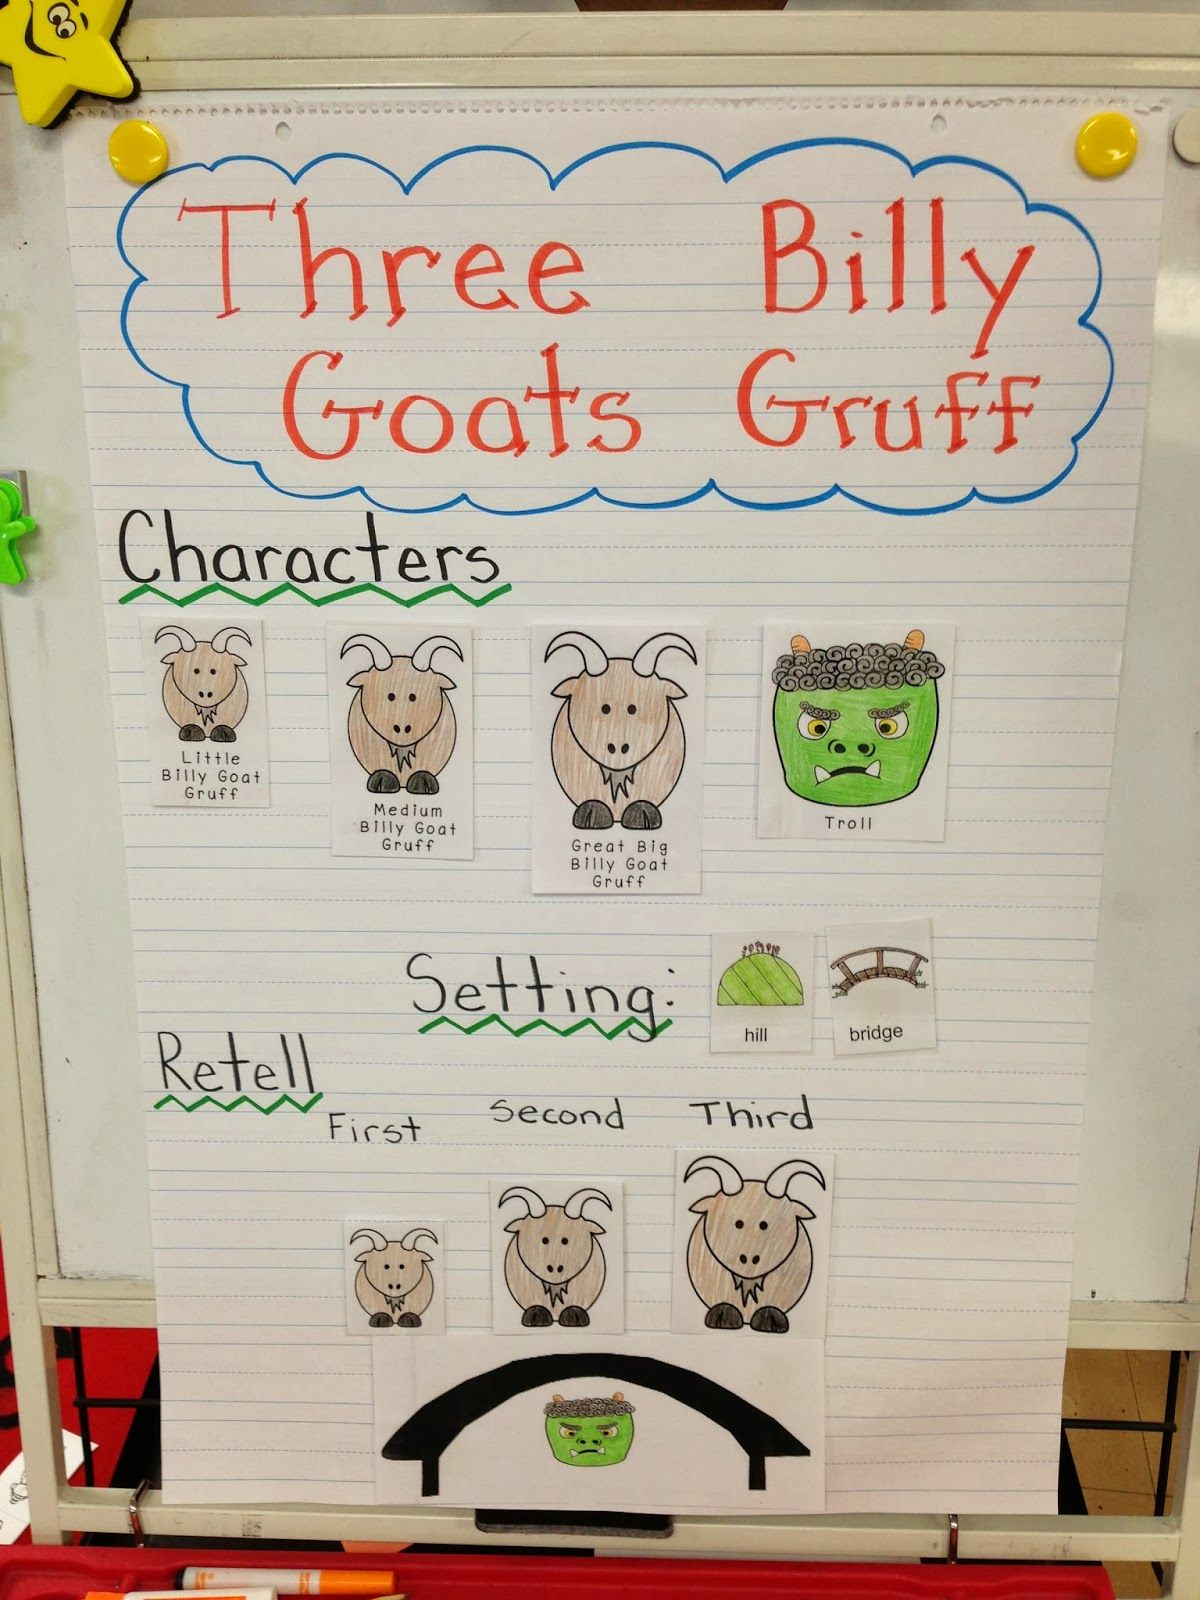 A spoonful of learning reading writing lots of freebies aprthree billy goats gruff activities and lots of freebies to go with the story robcynllc Image collections